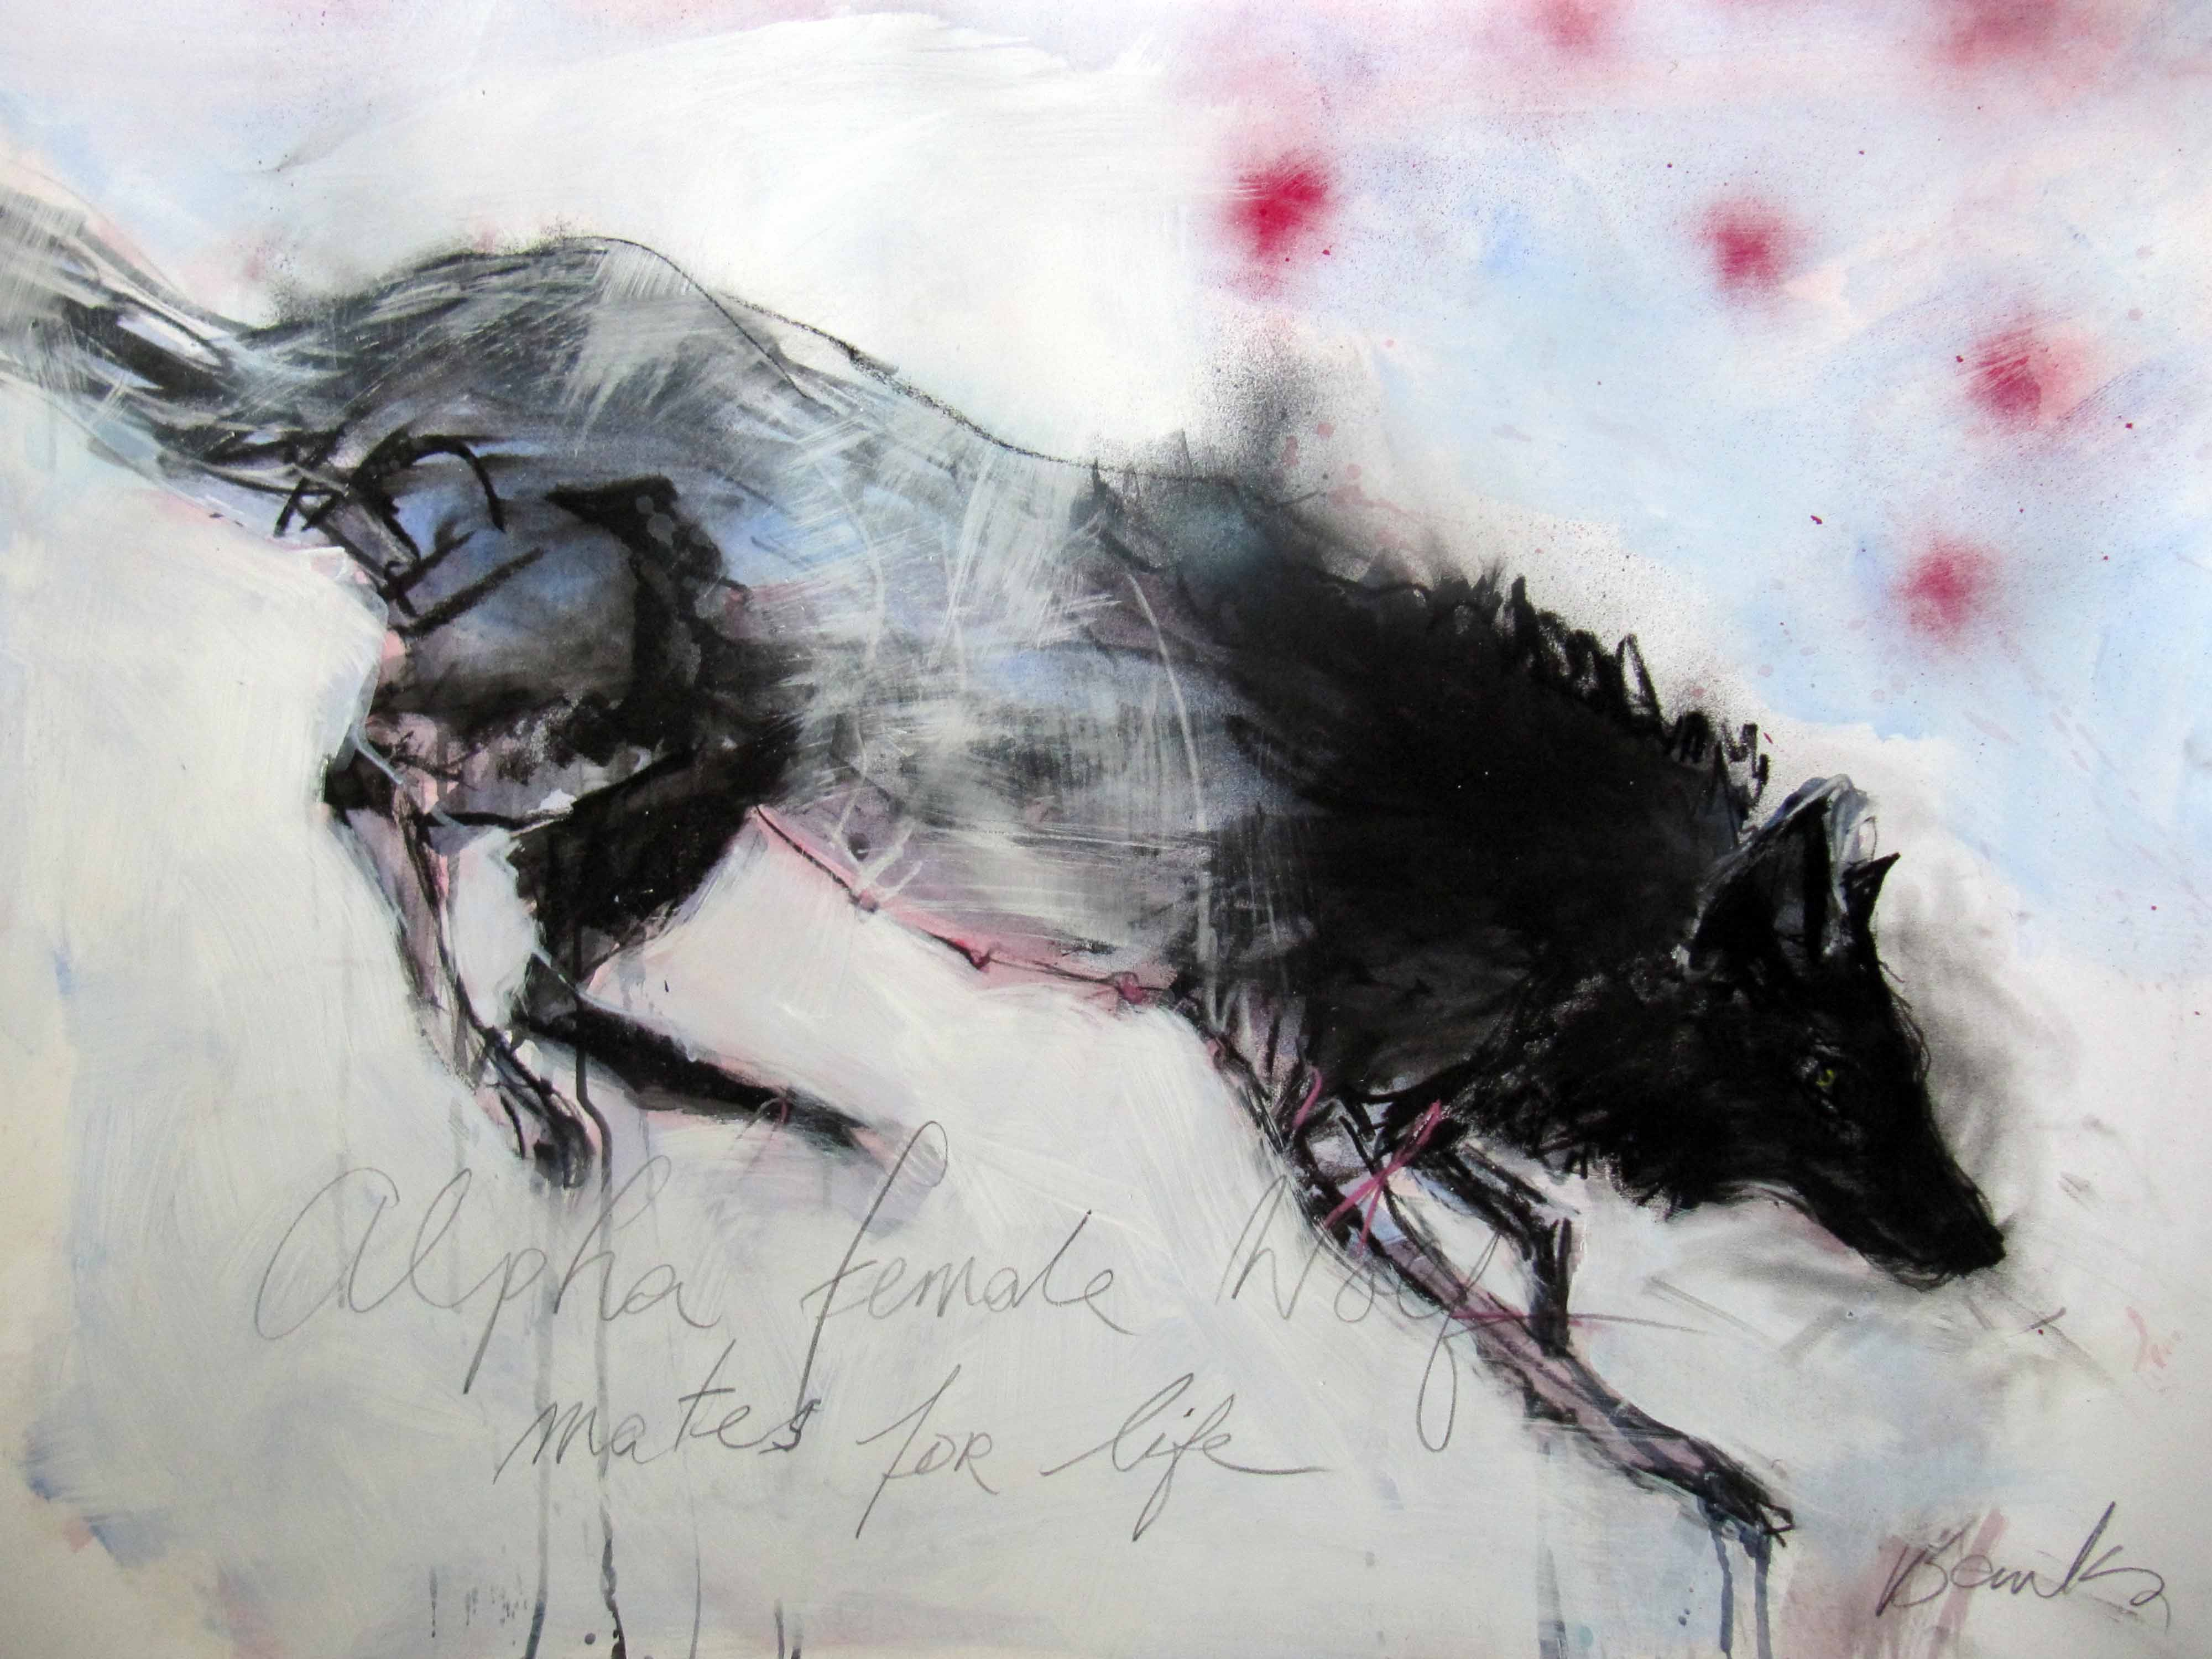 Female Wolf Mates for Life, Acyrlic & Mixed Media, 70 x 100 cm